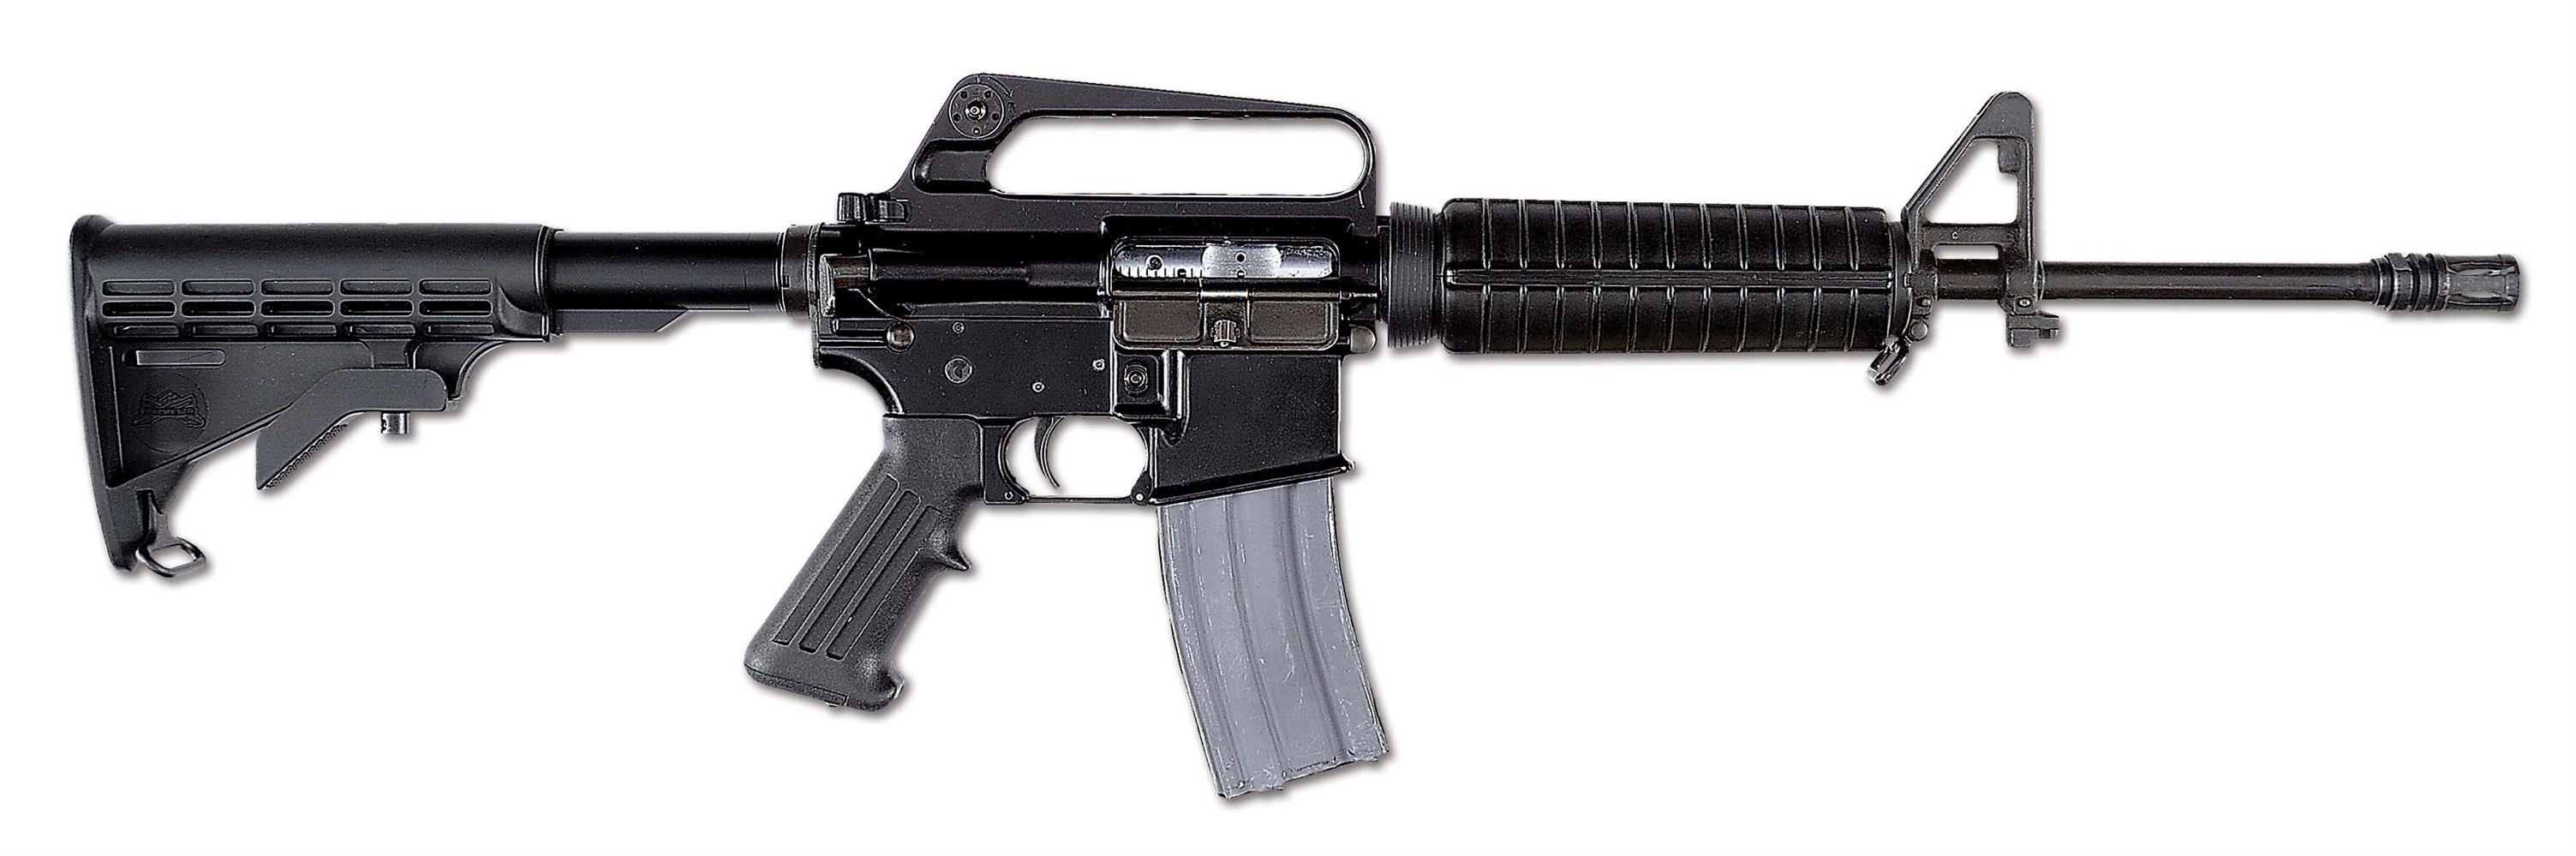 (N) Fine Olympic Arms Registered M16 Clone with Telescoping Stock (Fully Transferable).